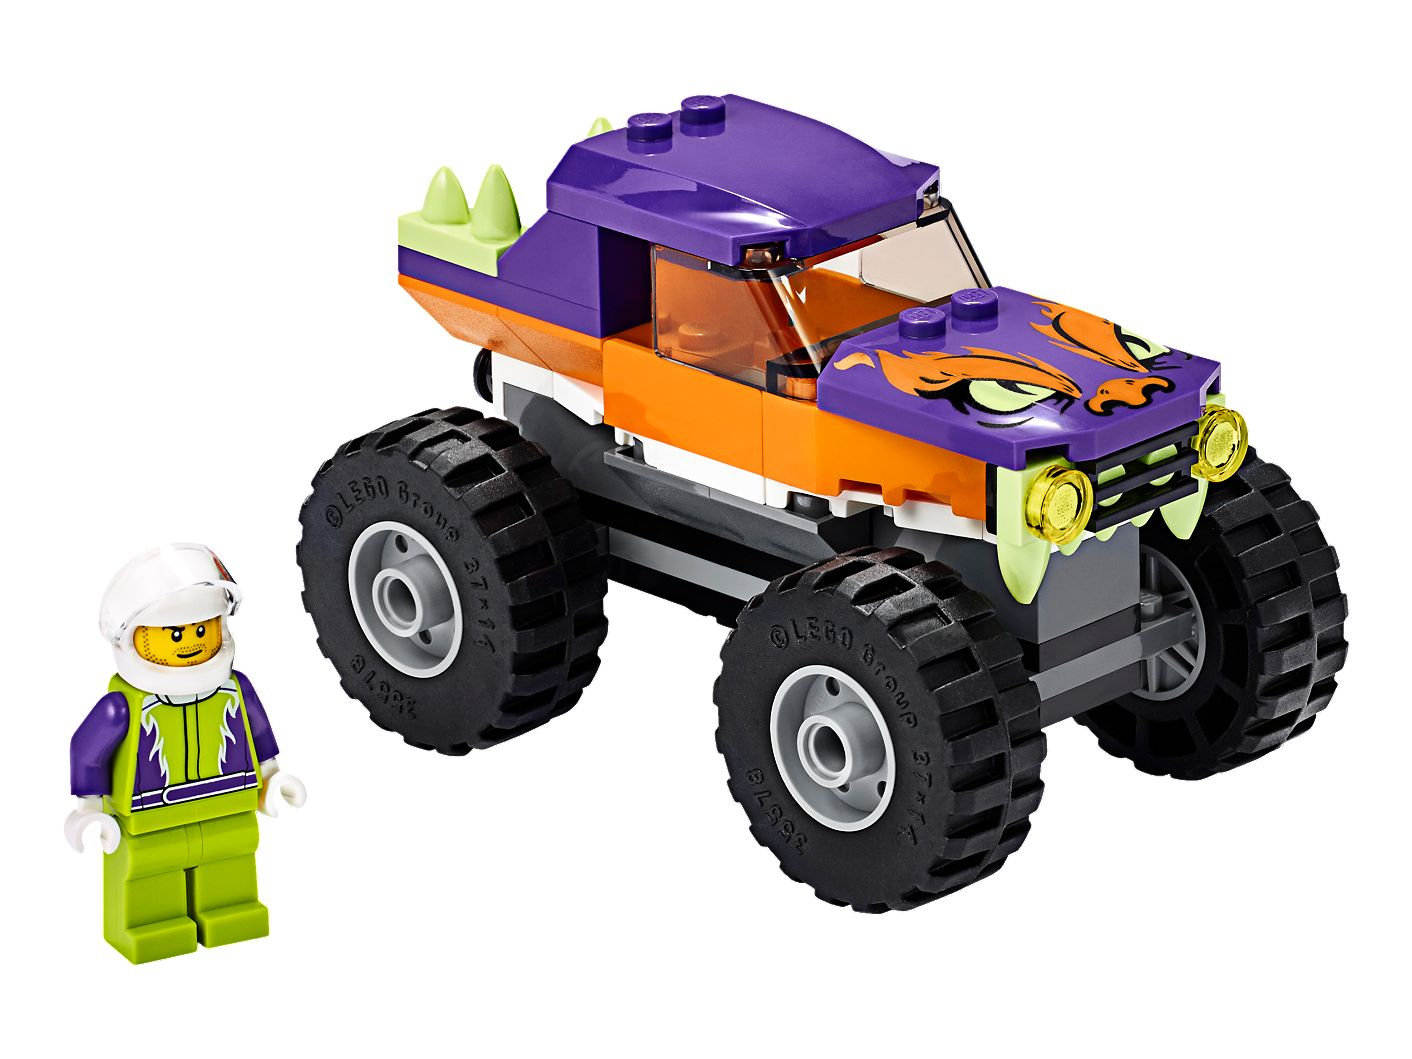 LEGO City - Monster-Truck (60251)